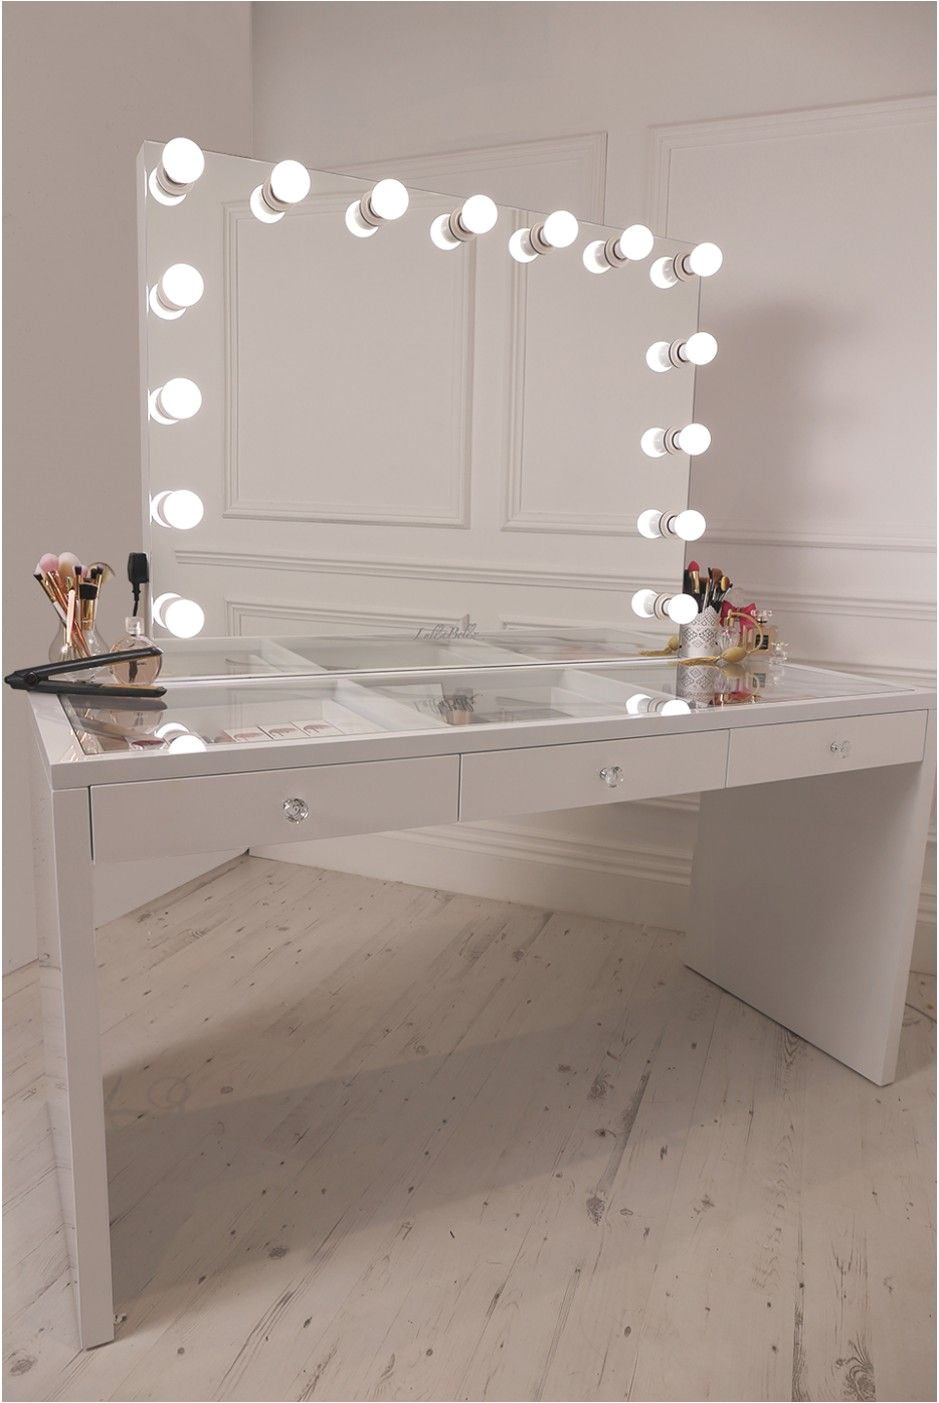 crisp white finish slaystation make up vanity with premium storage three spacious drawers encrusted with